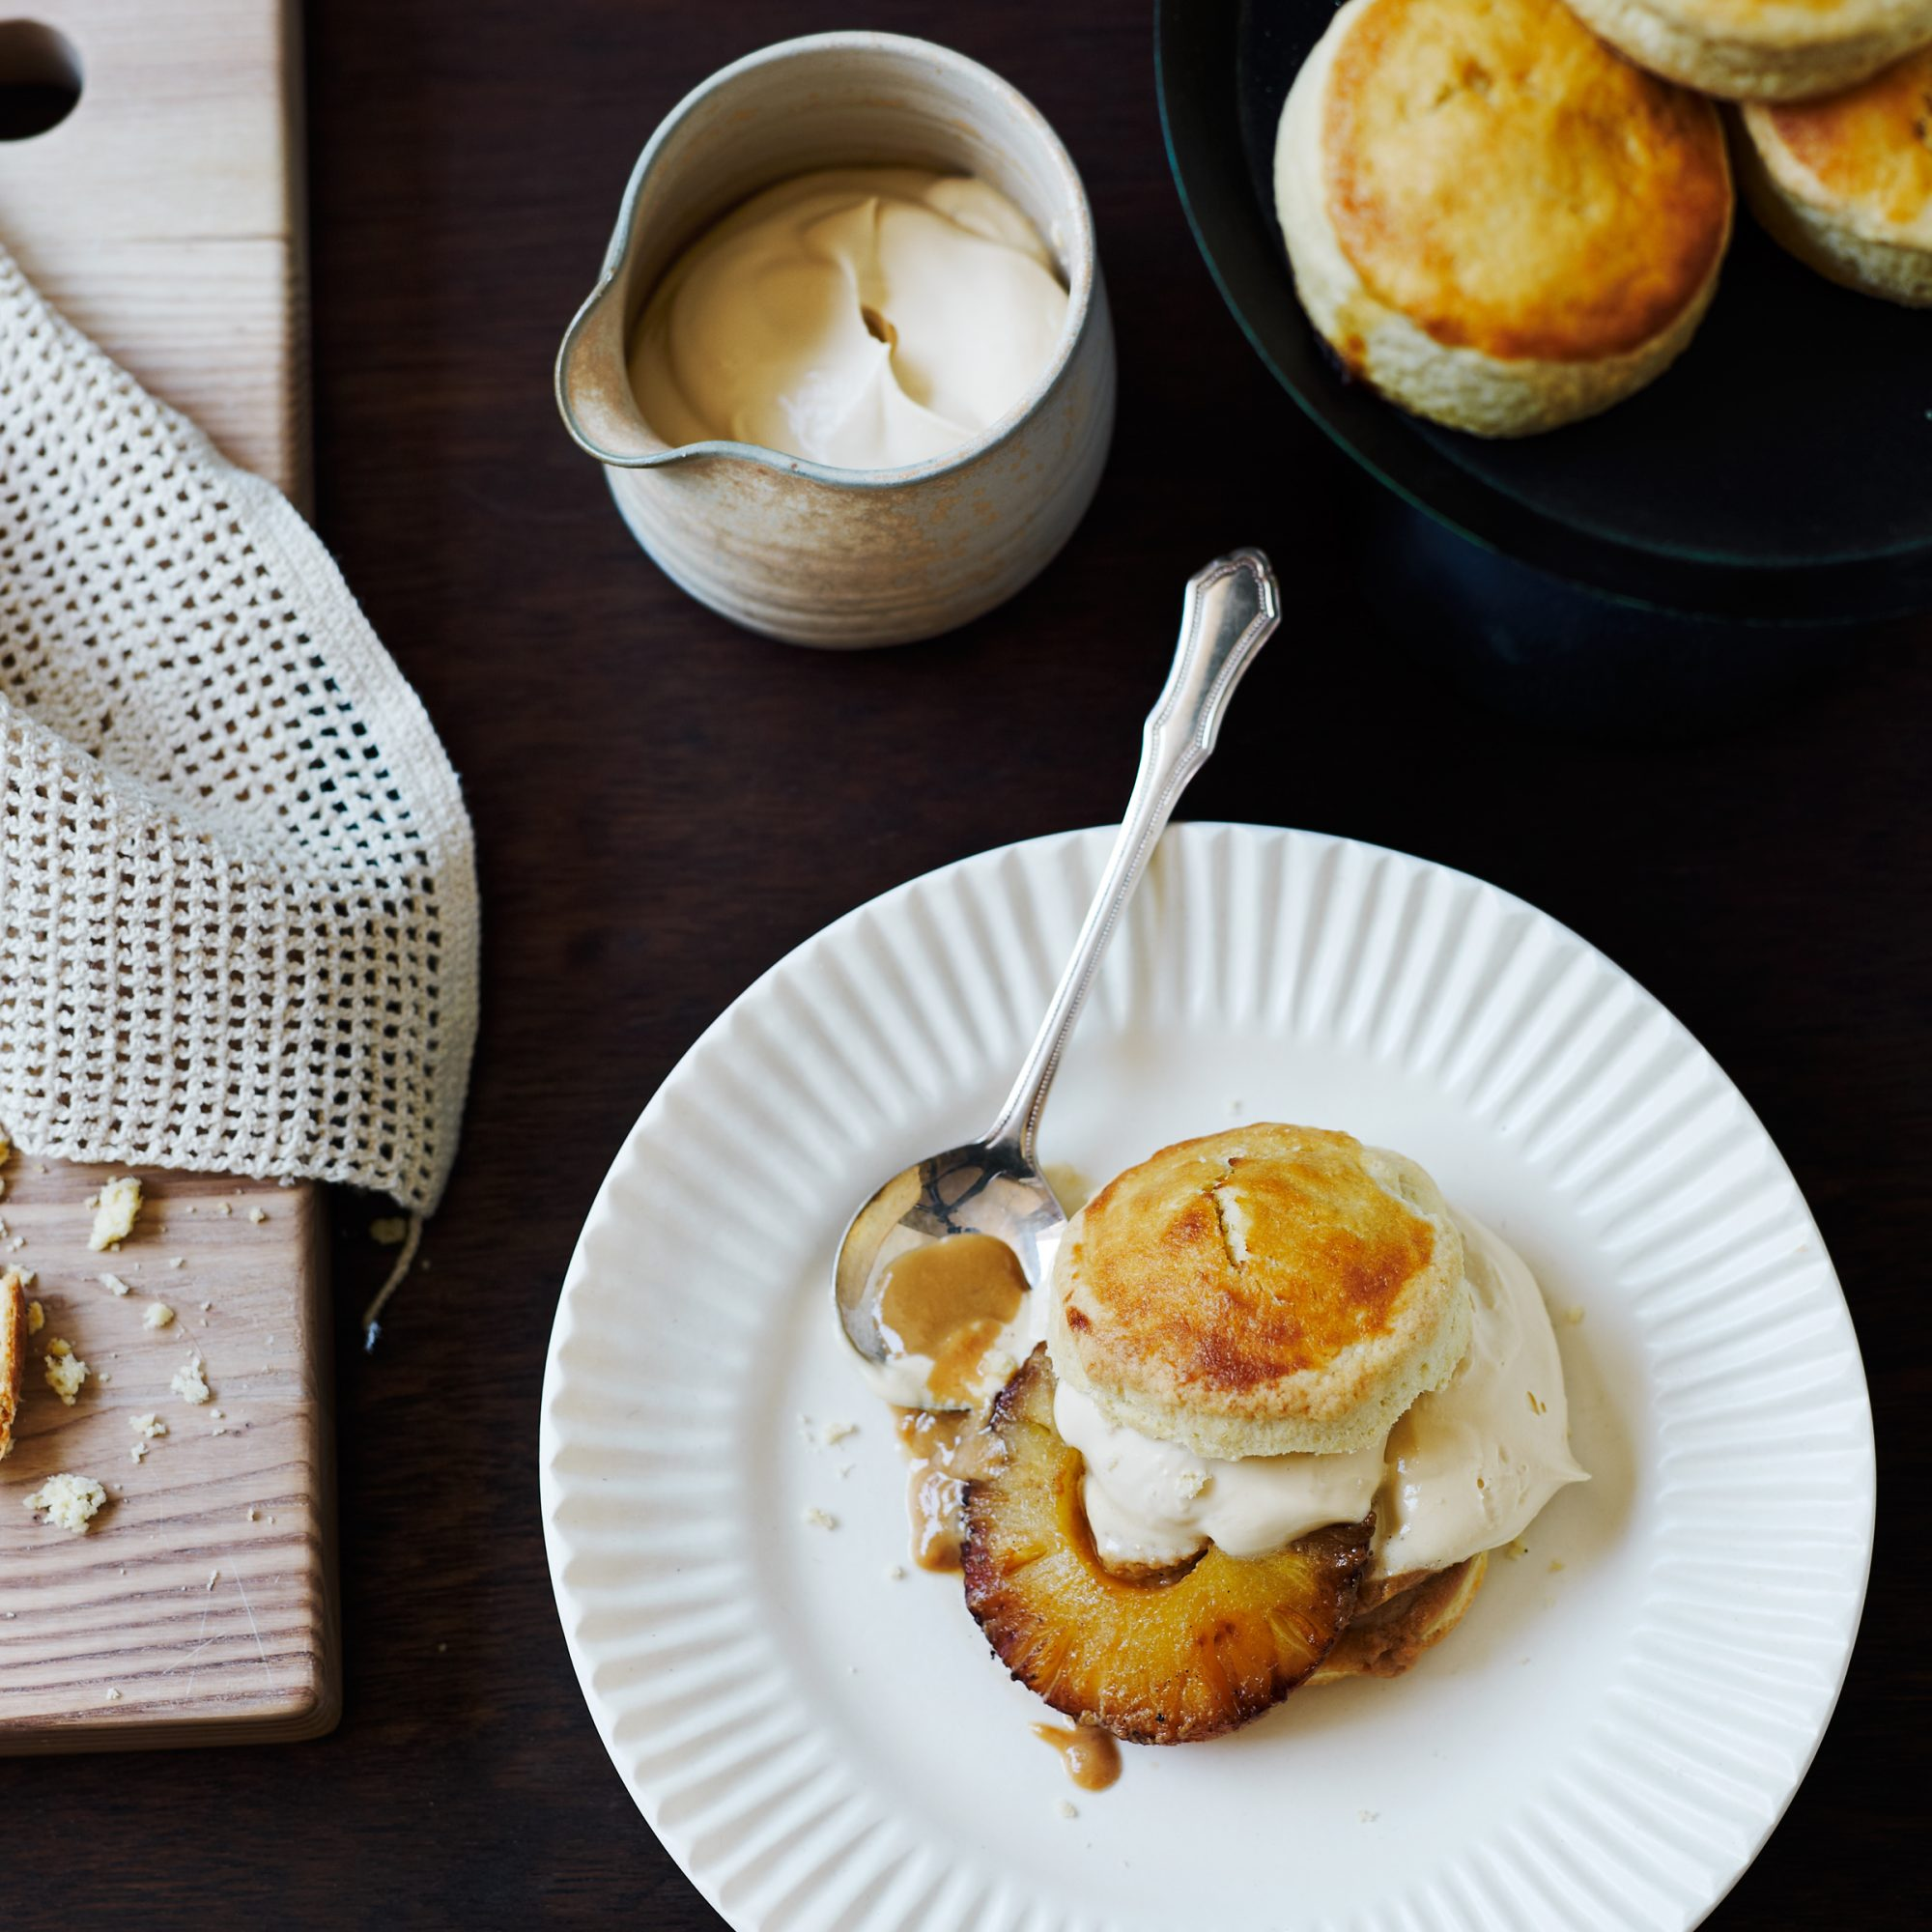 Pineapple Shortcakes with Dulce de Leche Whipped Cream